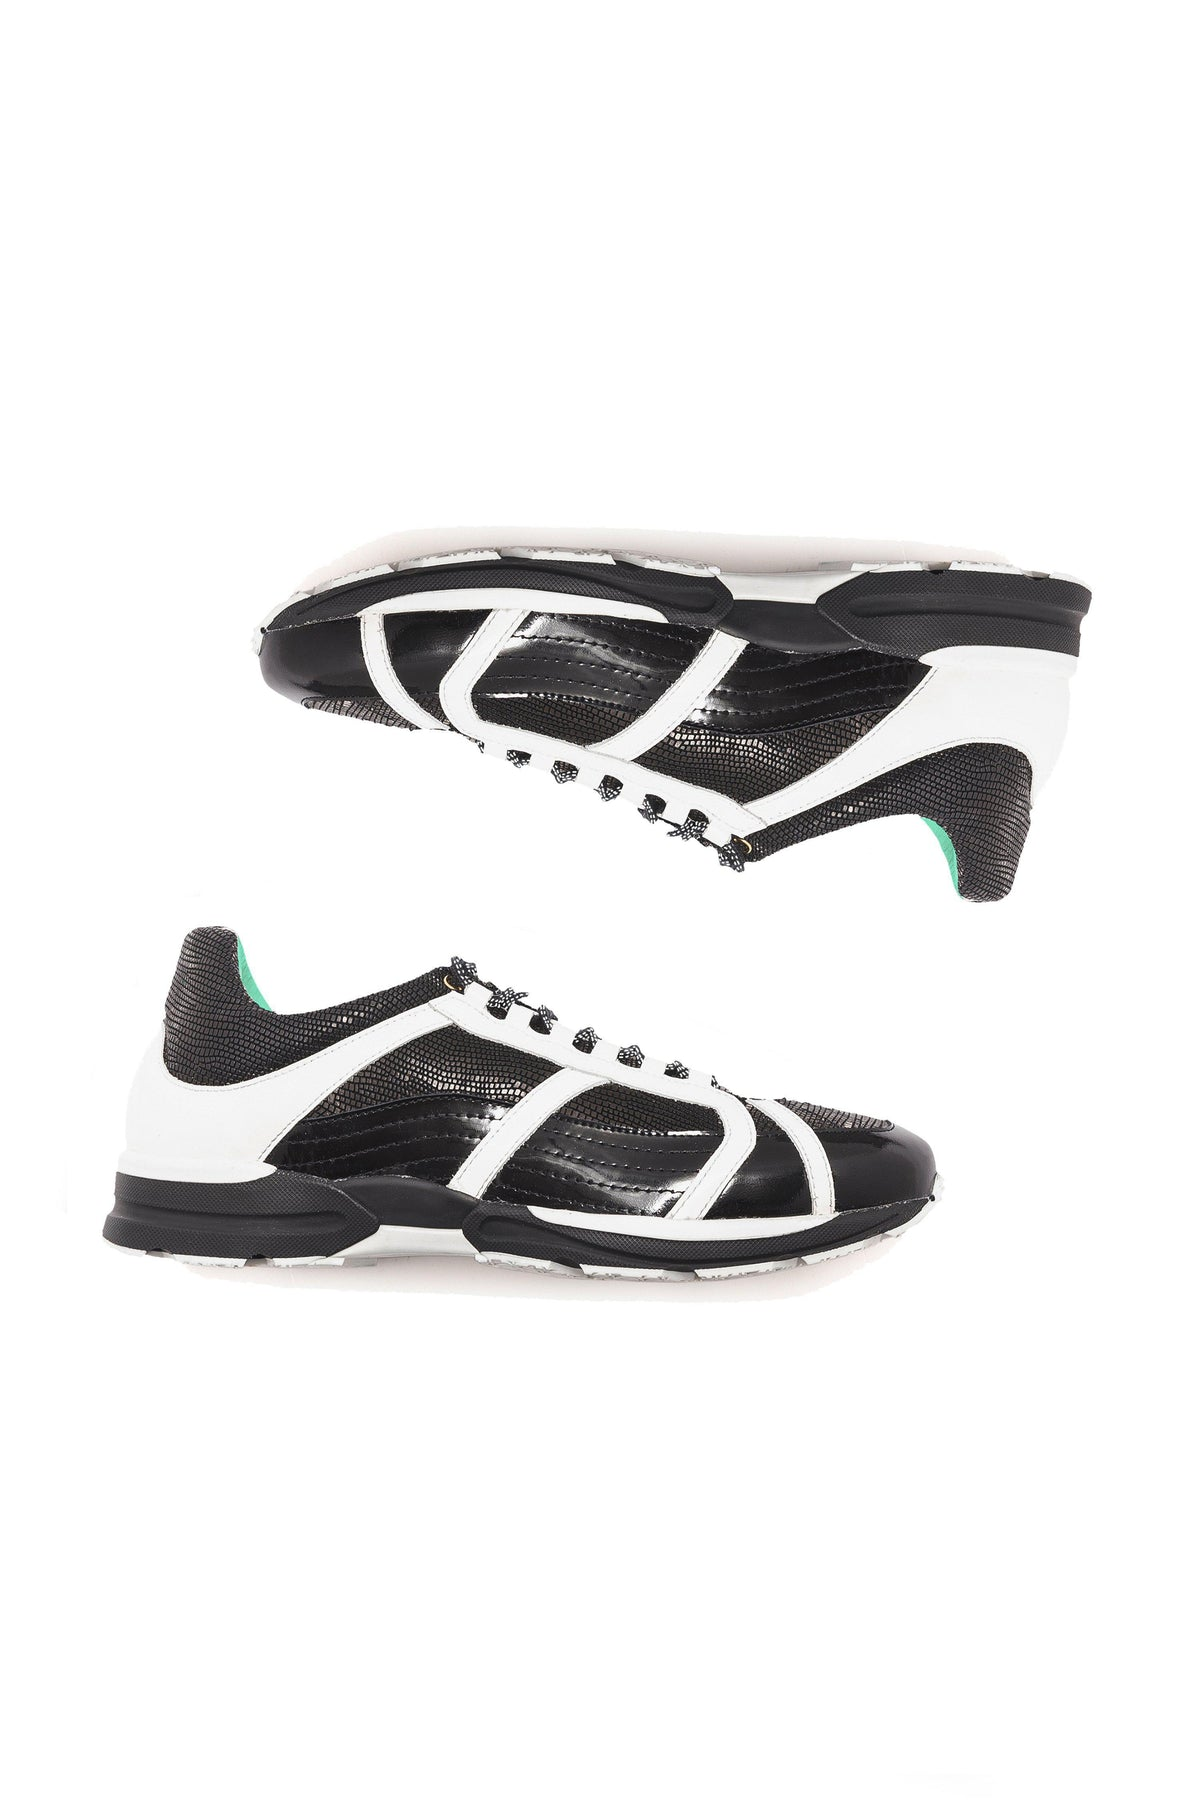 Running shoes in B&W leather